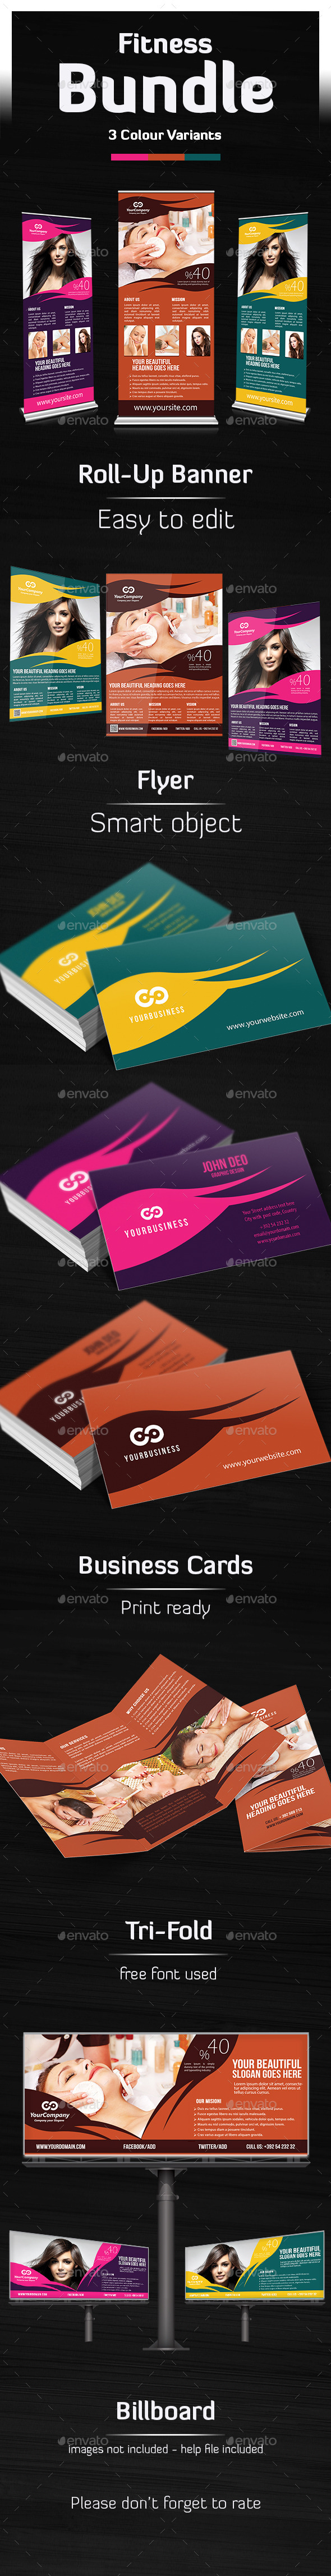 Hair & Beauty Salon Bundle Templates